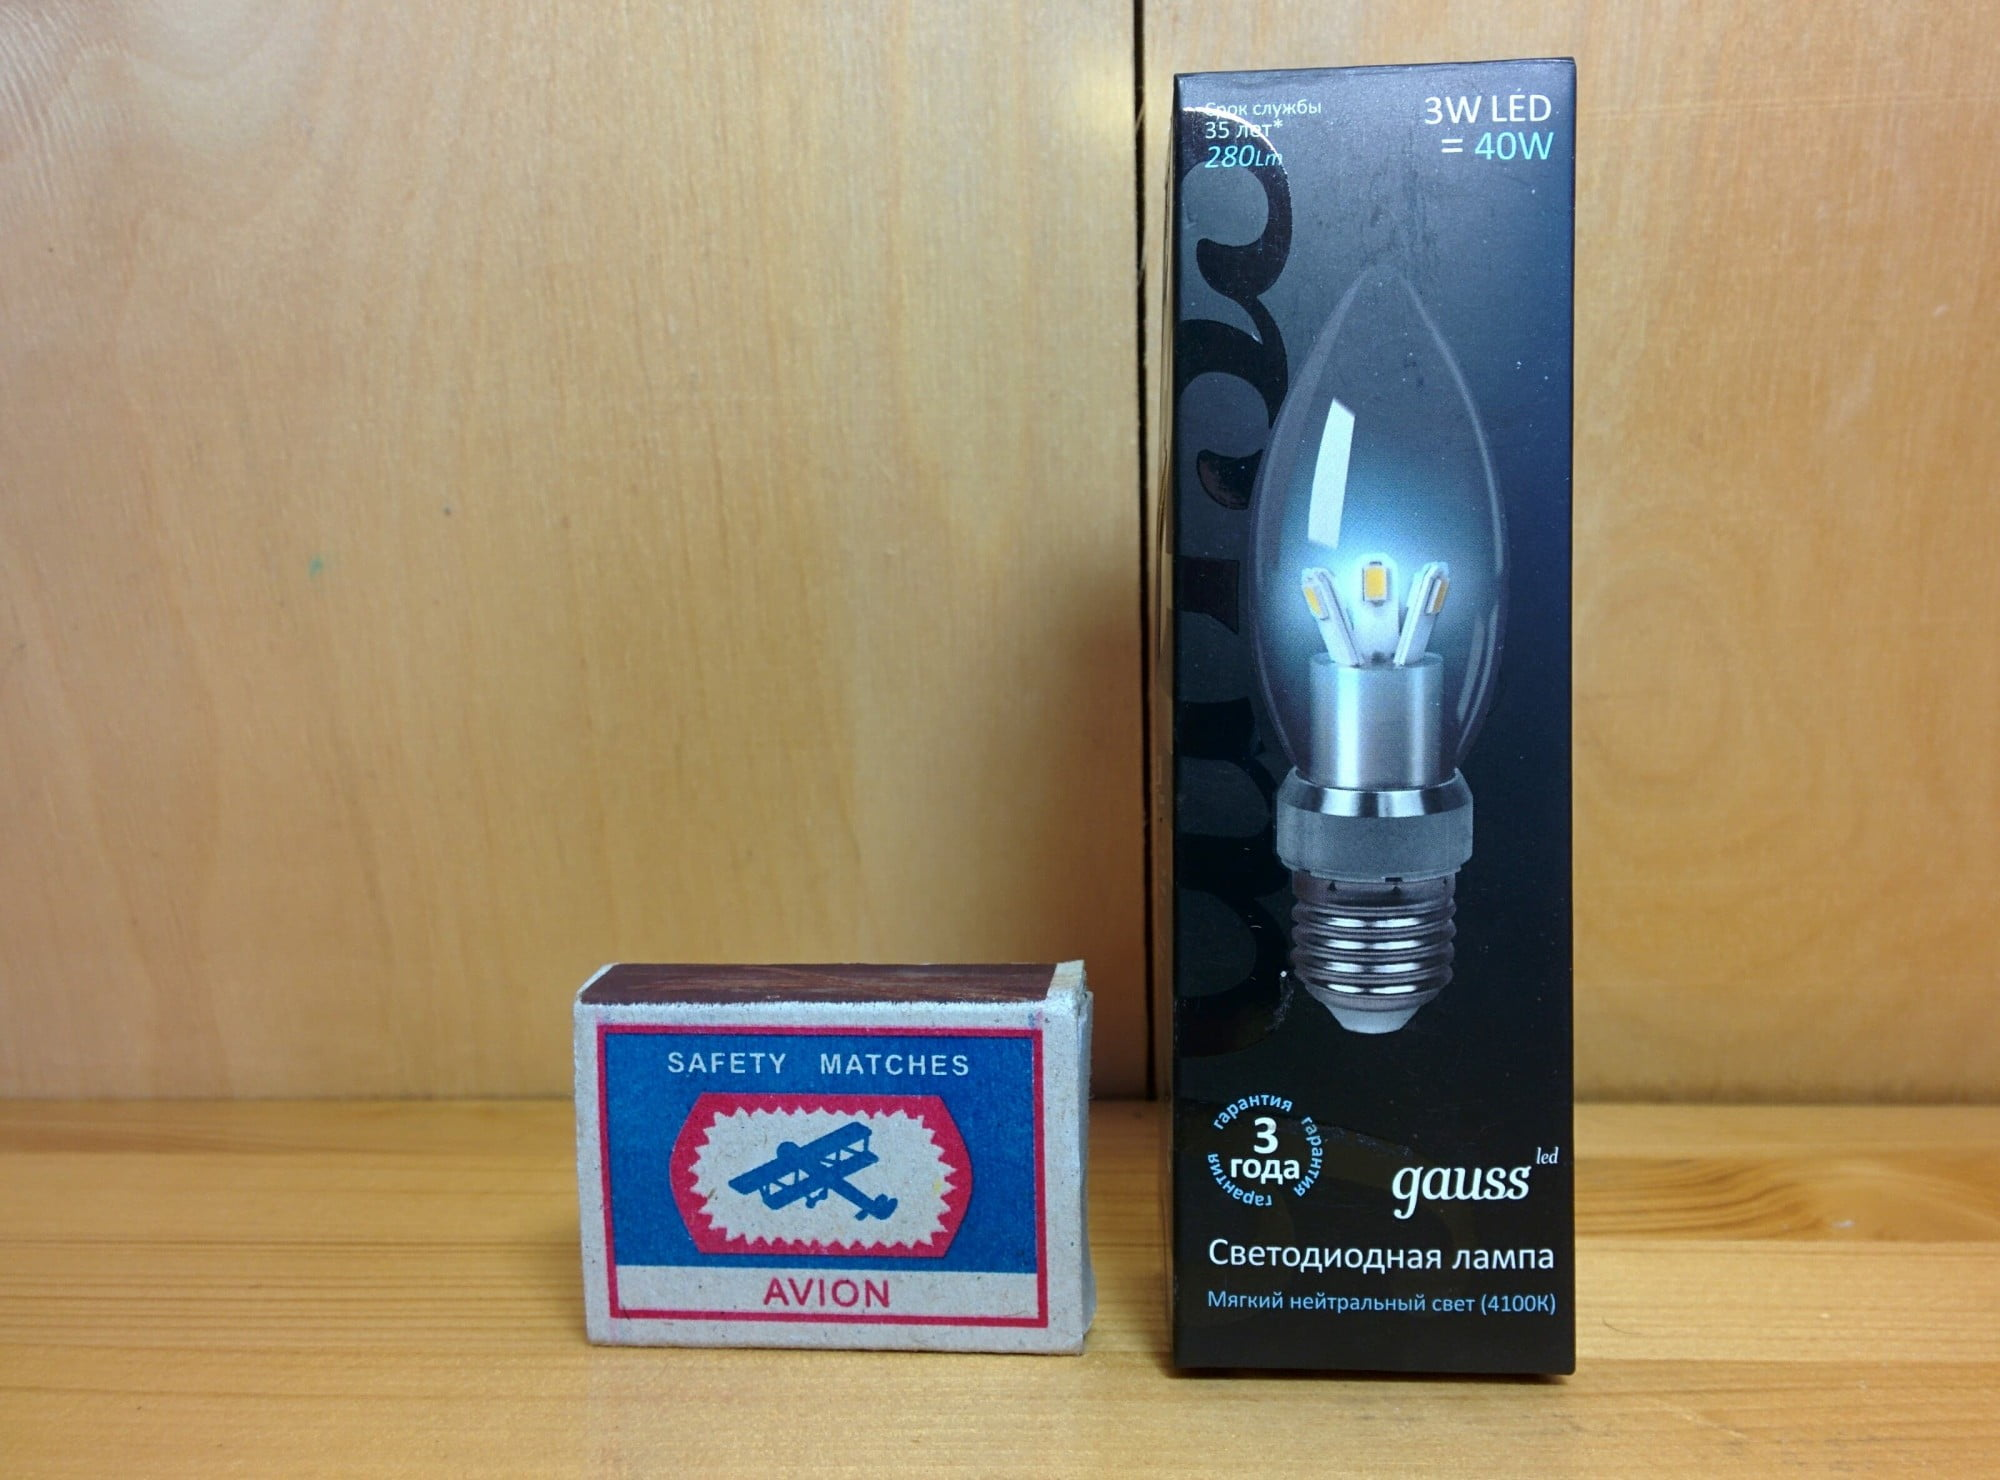 Gauss LED Candle Crystal clear 3W E27 4100K арт. HA103202203 Упаковка